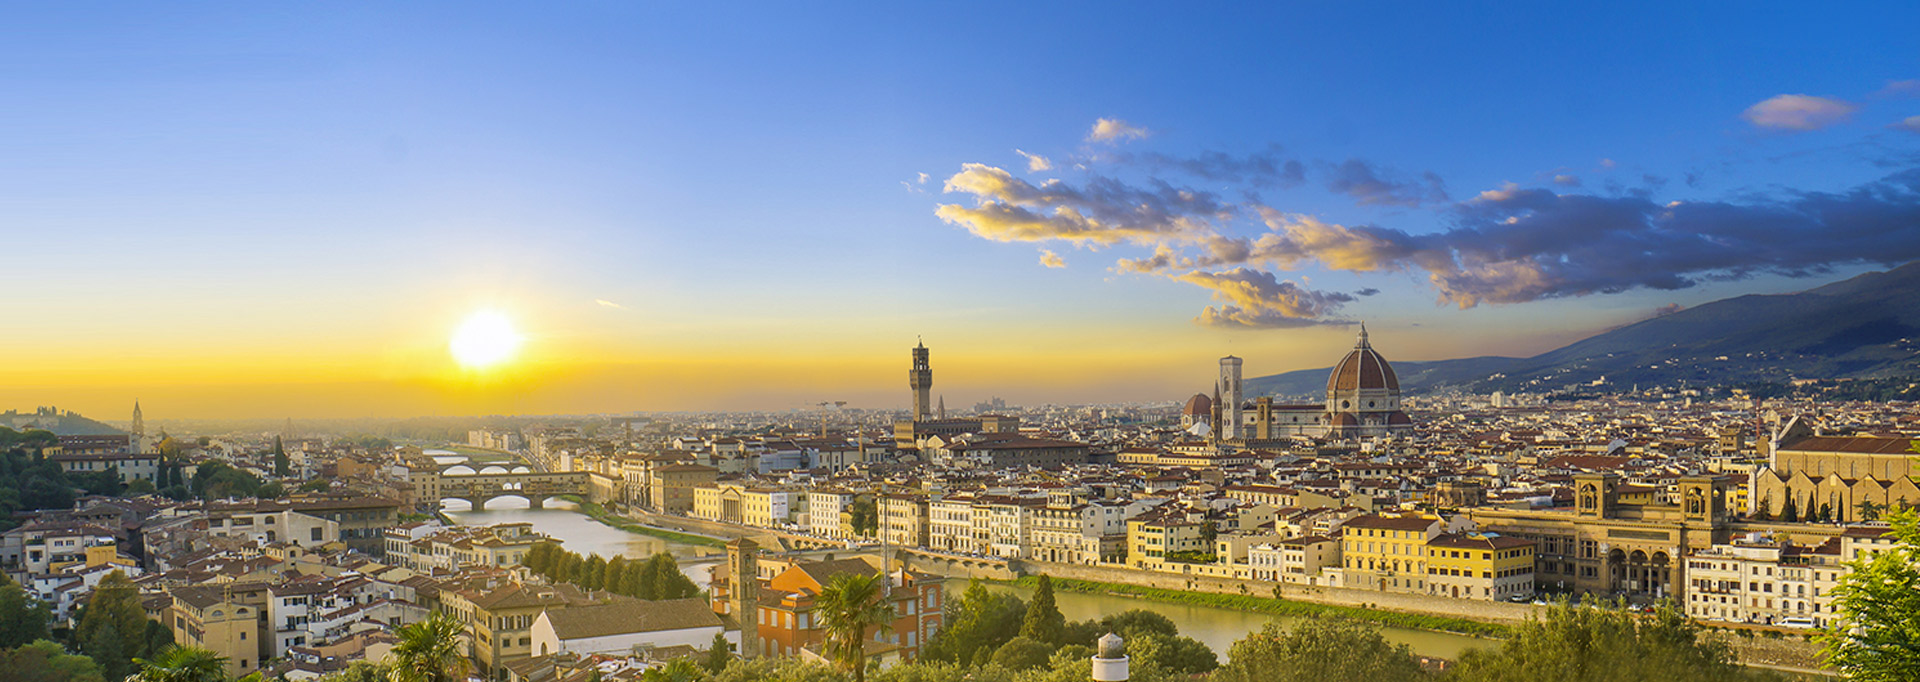 15 Day Italy Touring Holiday & Sightseeing Package ...